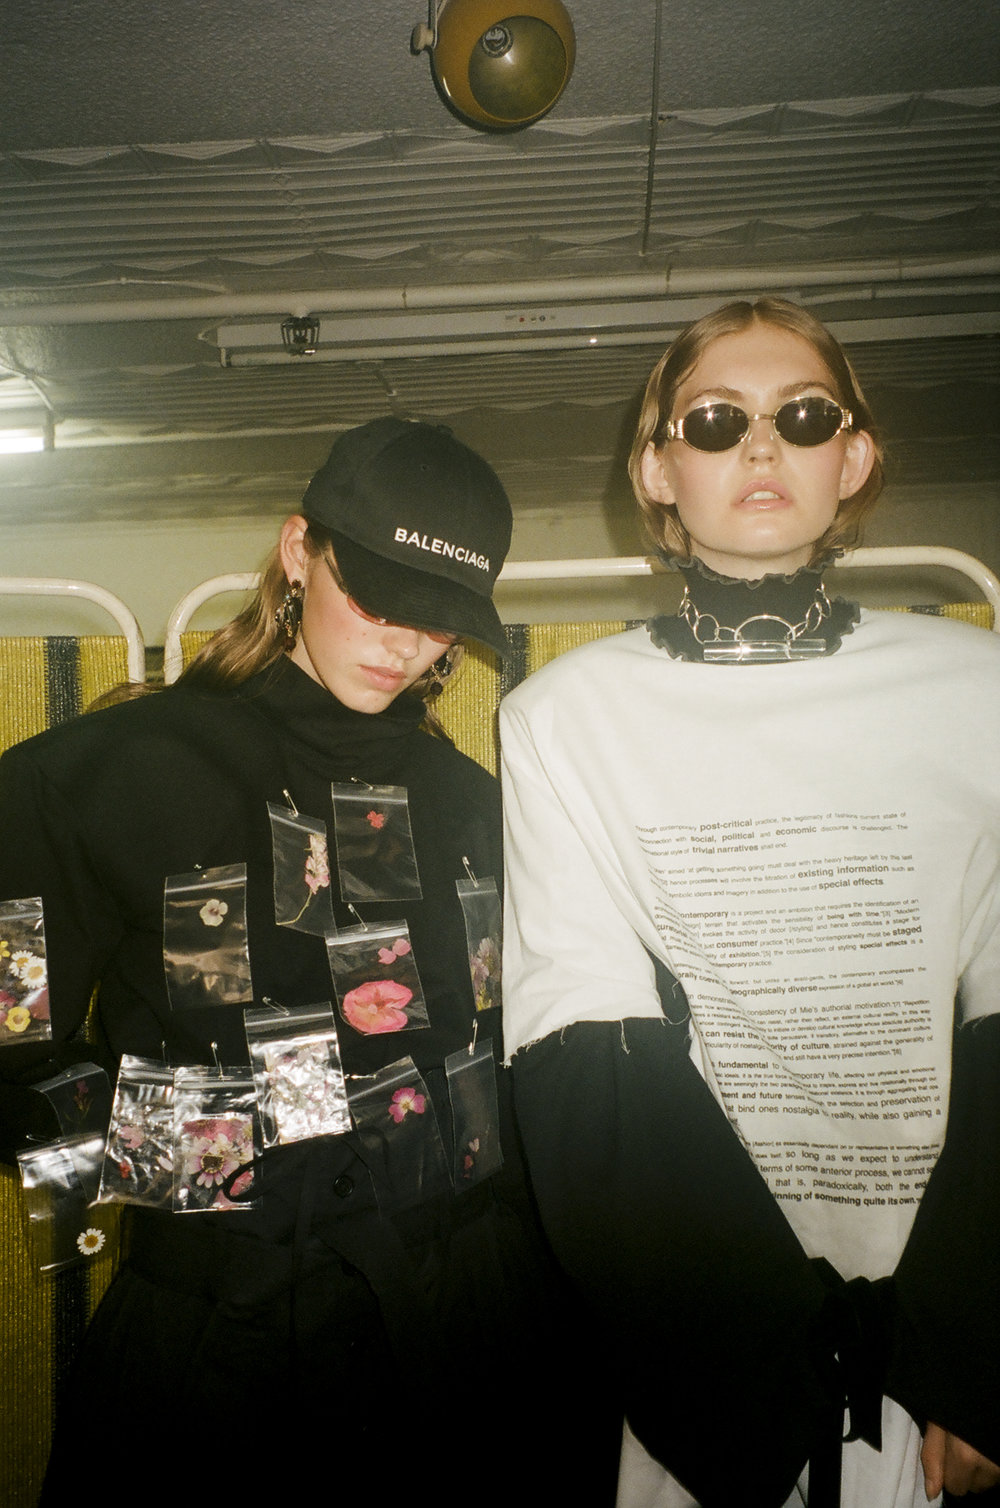 Kymberley (right) wears Samantha Diorio & Jake Paraskeva 'Manifesto' T-shirt